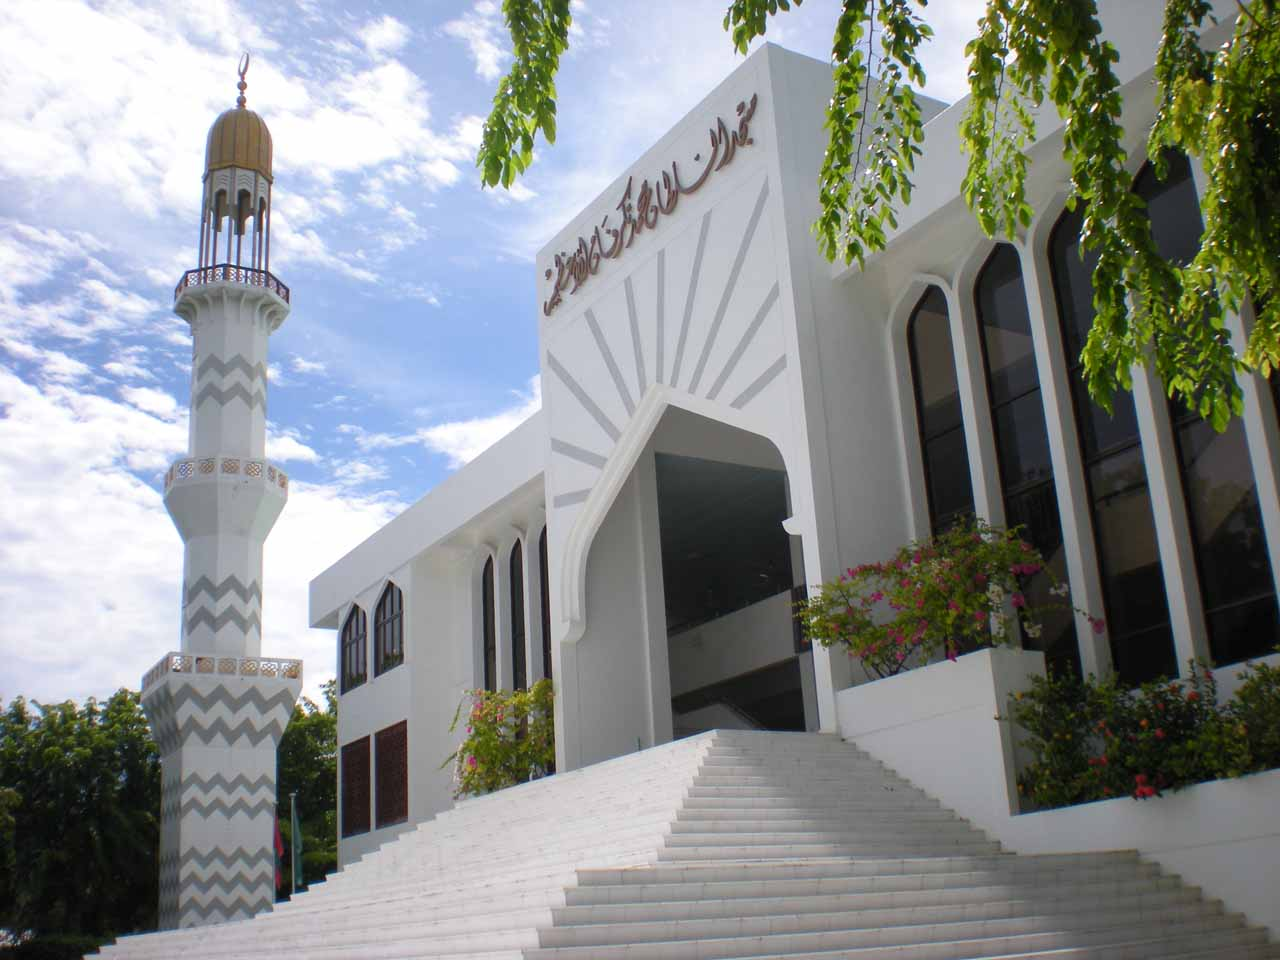 One of the Islam-influenced buildings we saw in Male